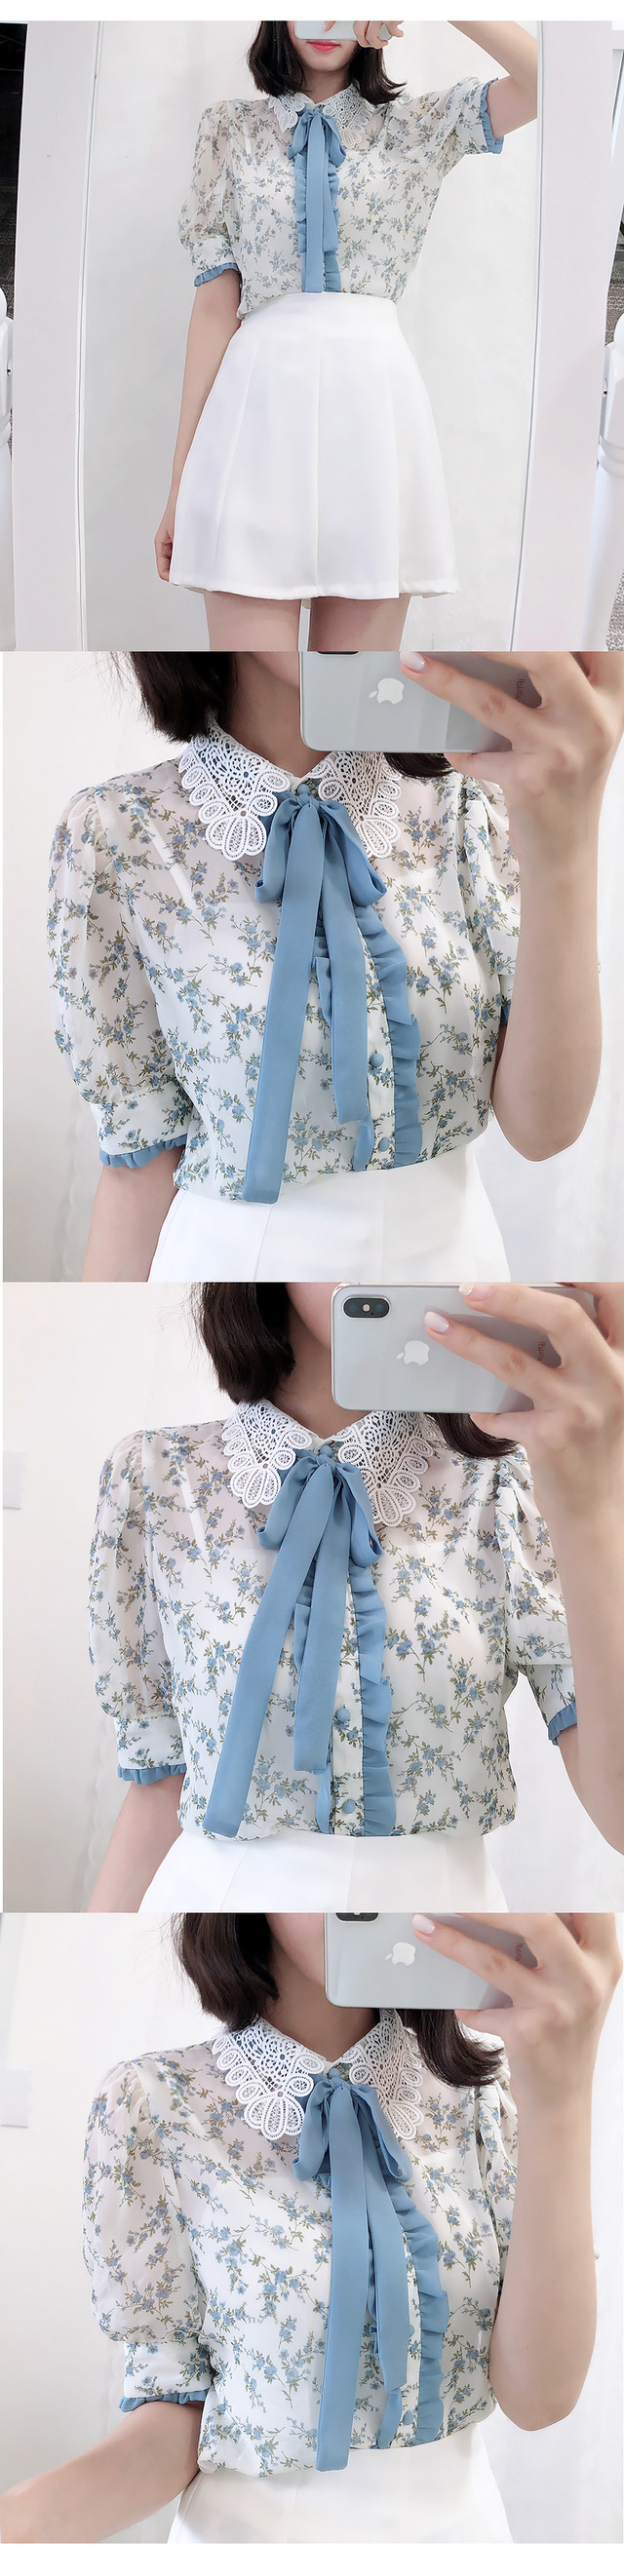 Rosa flower Kara blouse